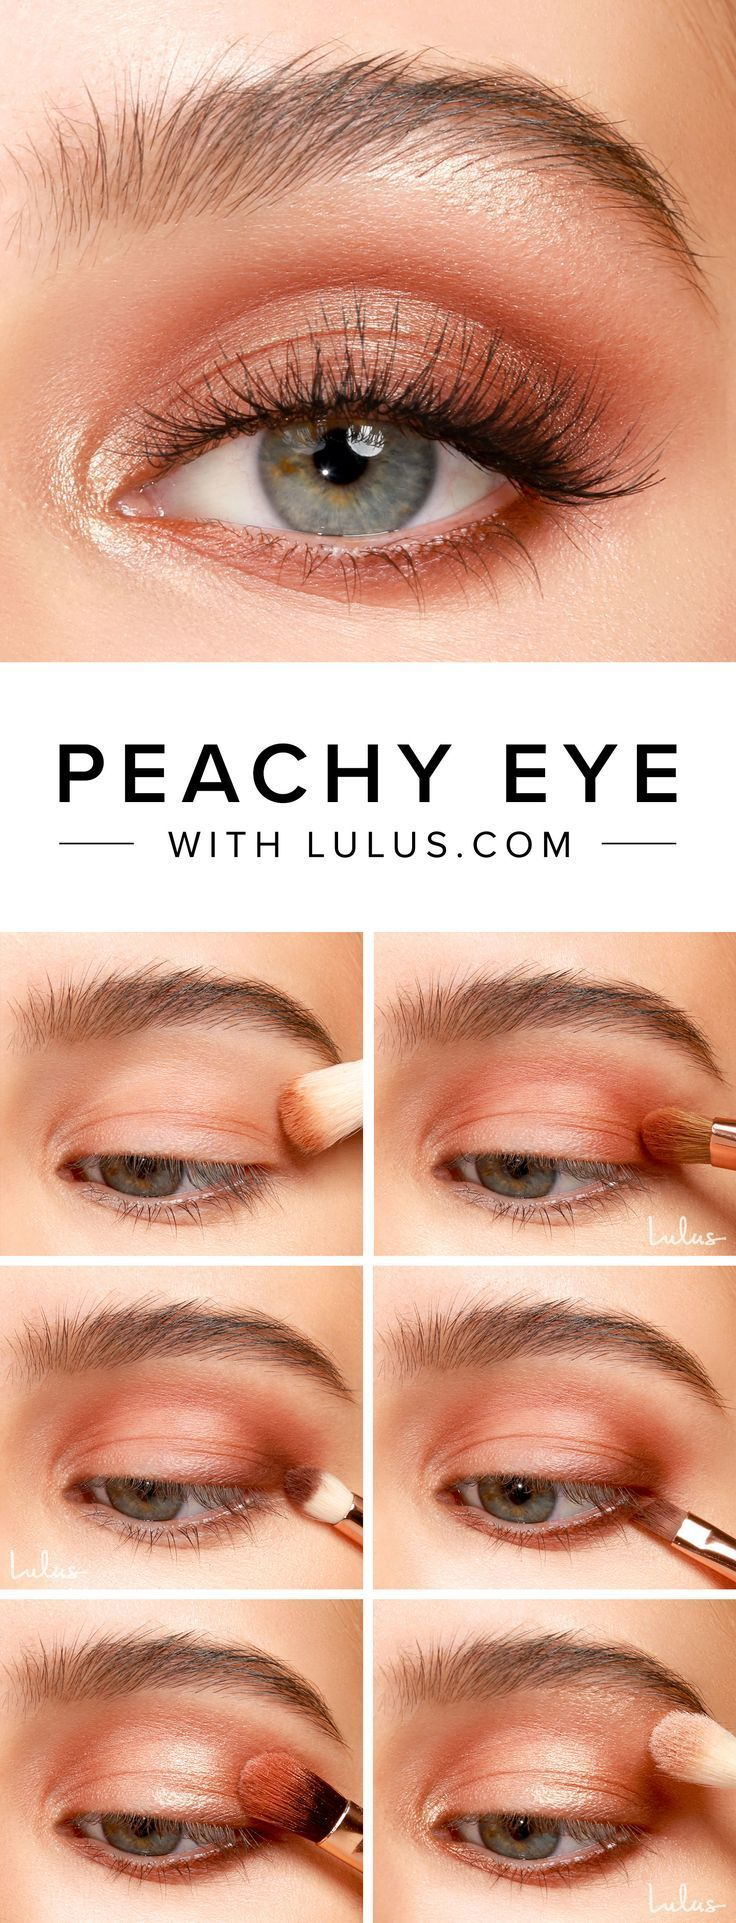 The Perfectly Peachy Eye Makeup Look Brides Bridesmaids Are Going Crazy Over During The Summer Wedding Peachy Eyeshadow Simple Eye Makeup Dramatic Eye Makeup